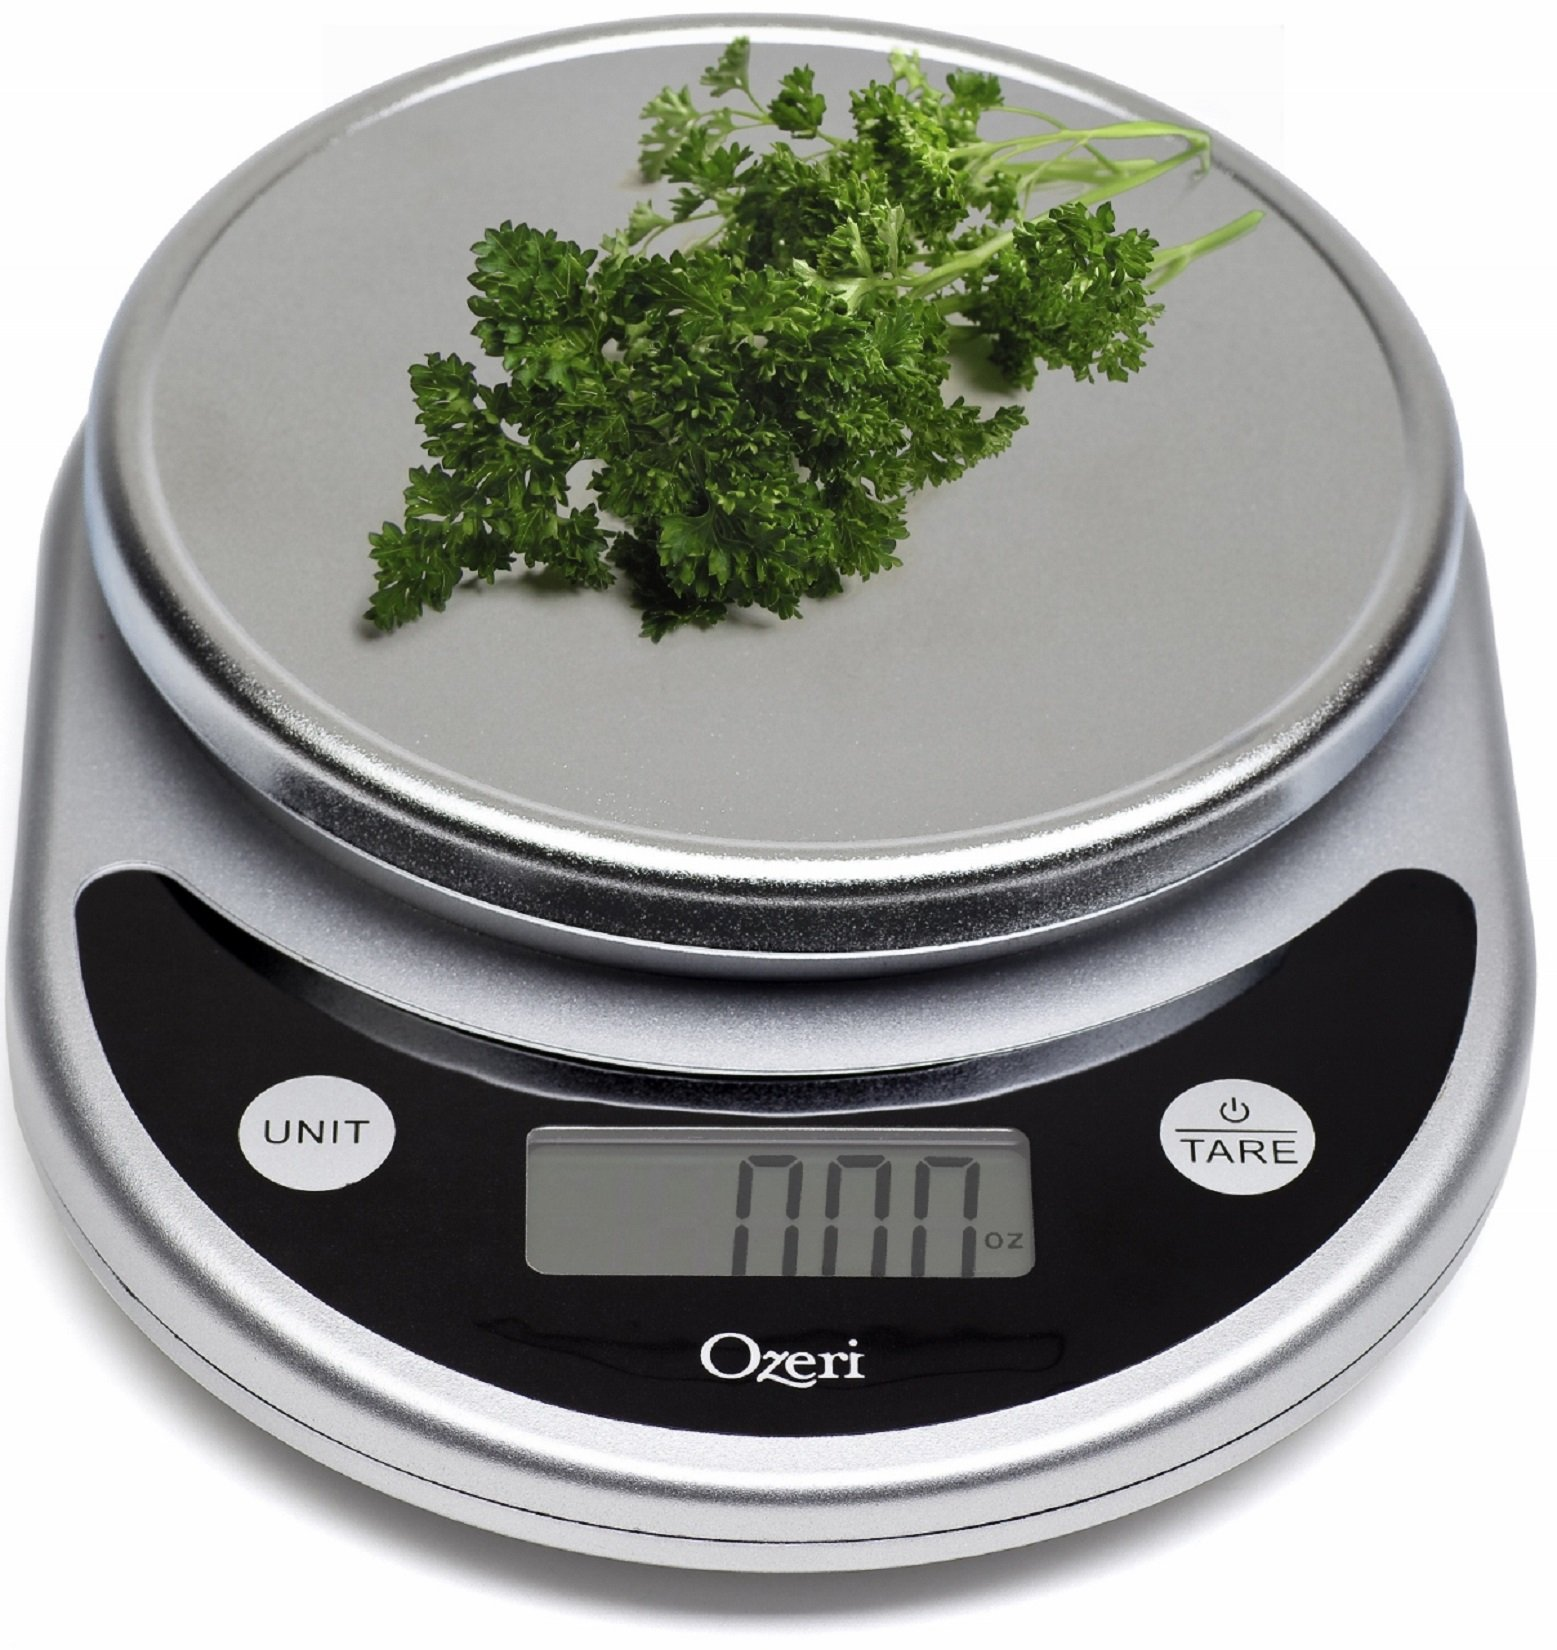 Ozeri Pronto Digital Multifunction Kitchen and Food Scale  Elegant Black. Amazon com  EatSmart Precision Digital Bathroom Scale with Extra